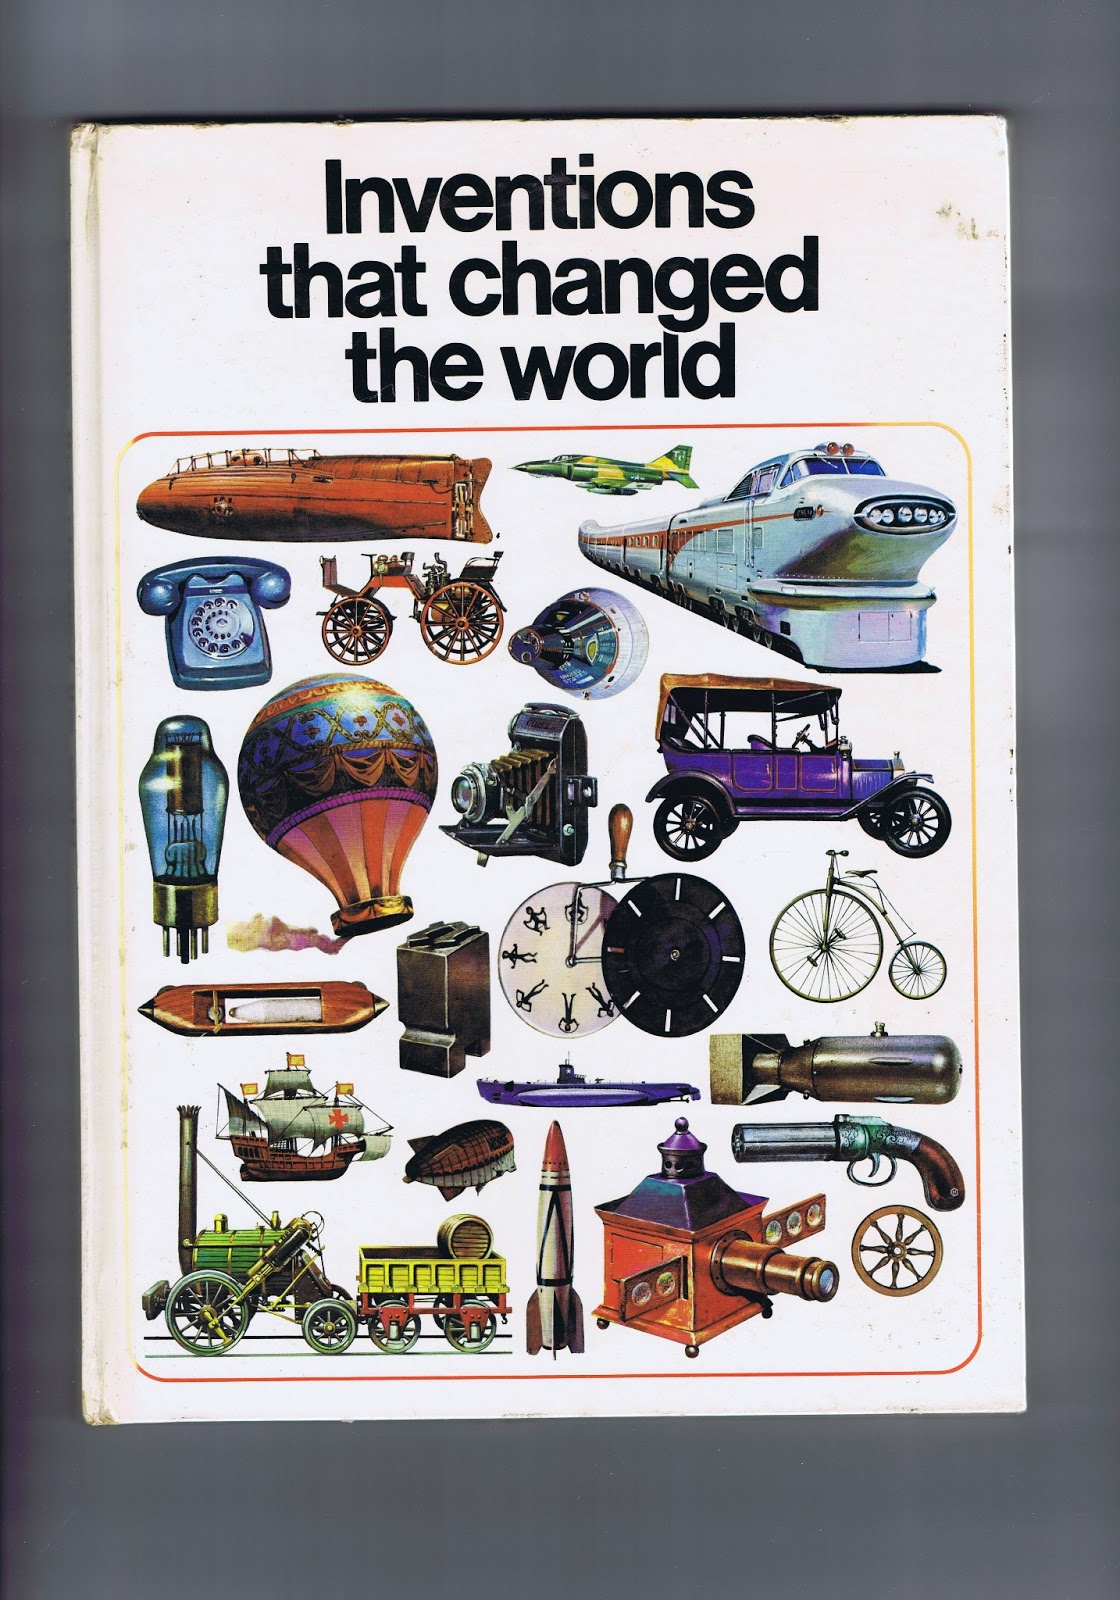 Book intervention project inventions that changed the world 2010